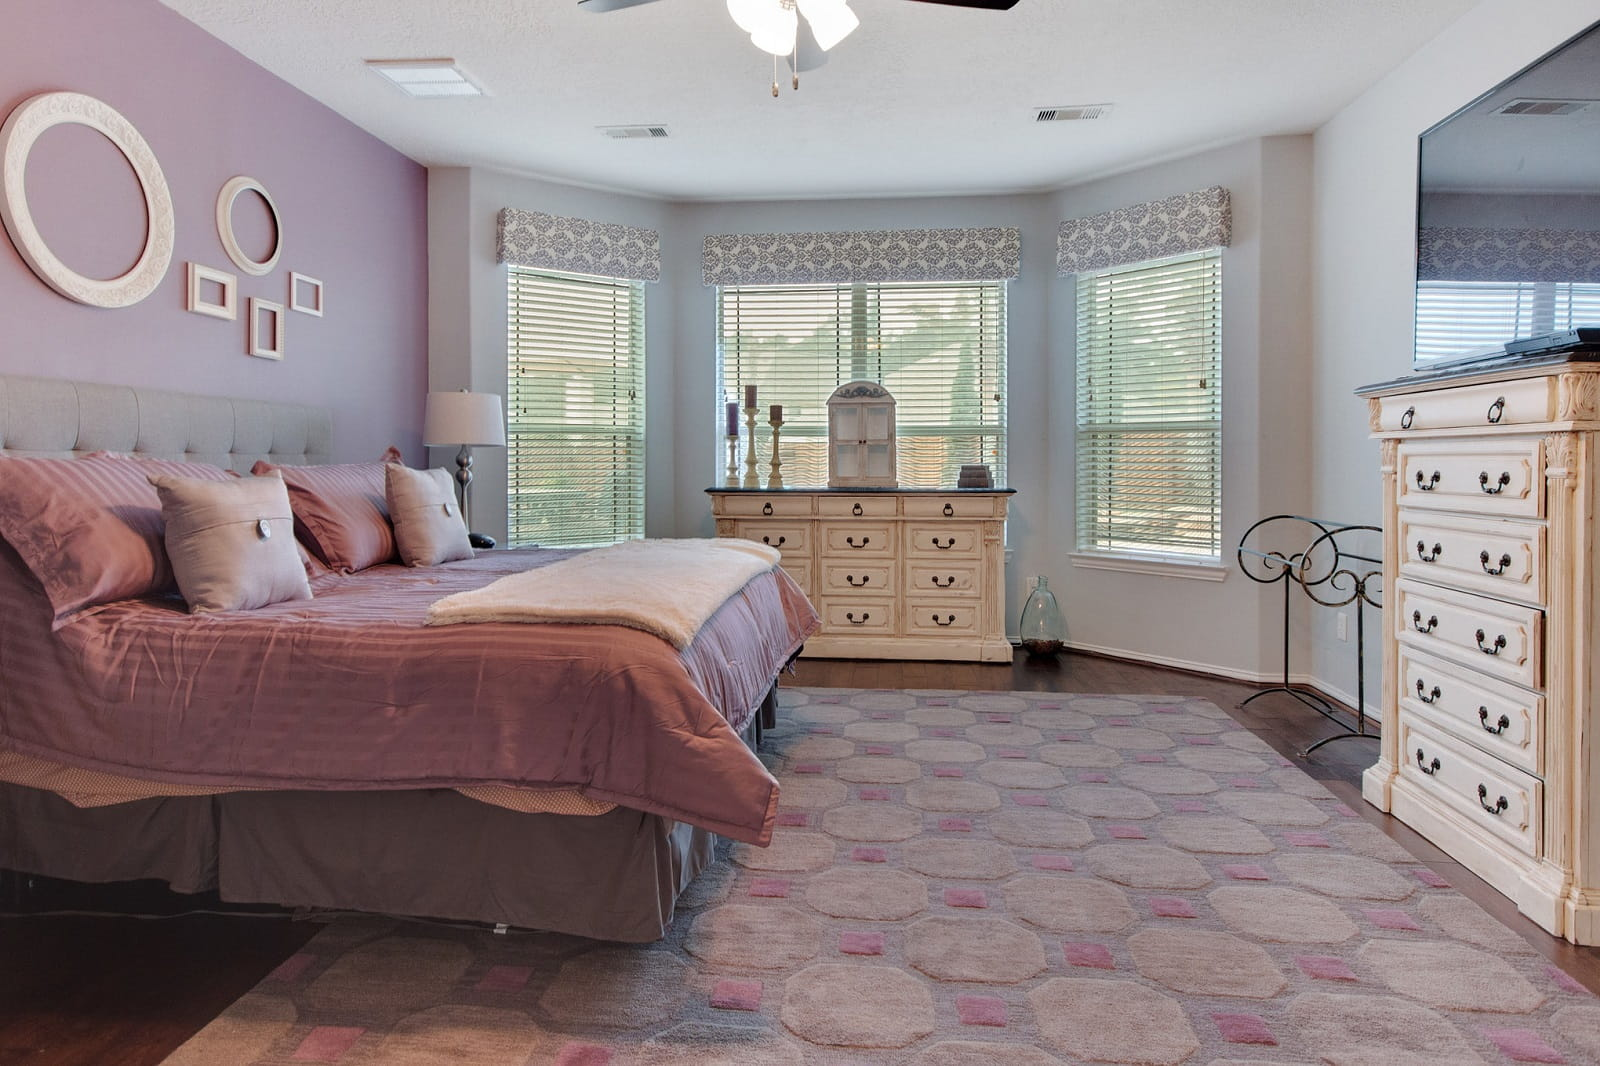 Real Estate Photographers in The Woodlands - TX - Bedroom View